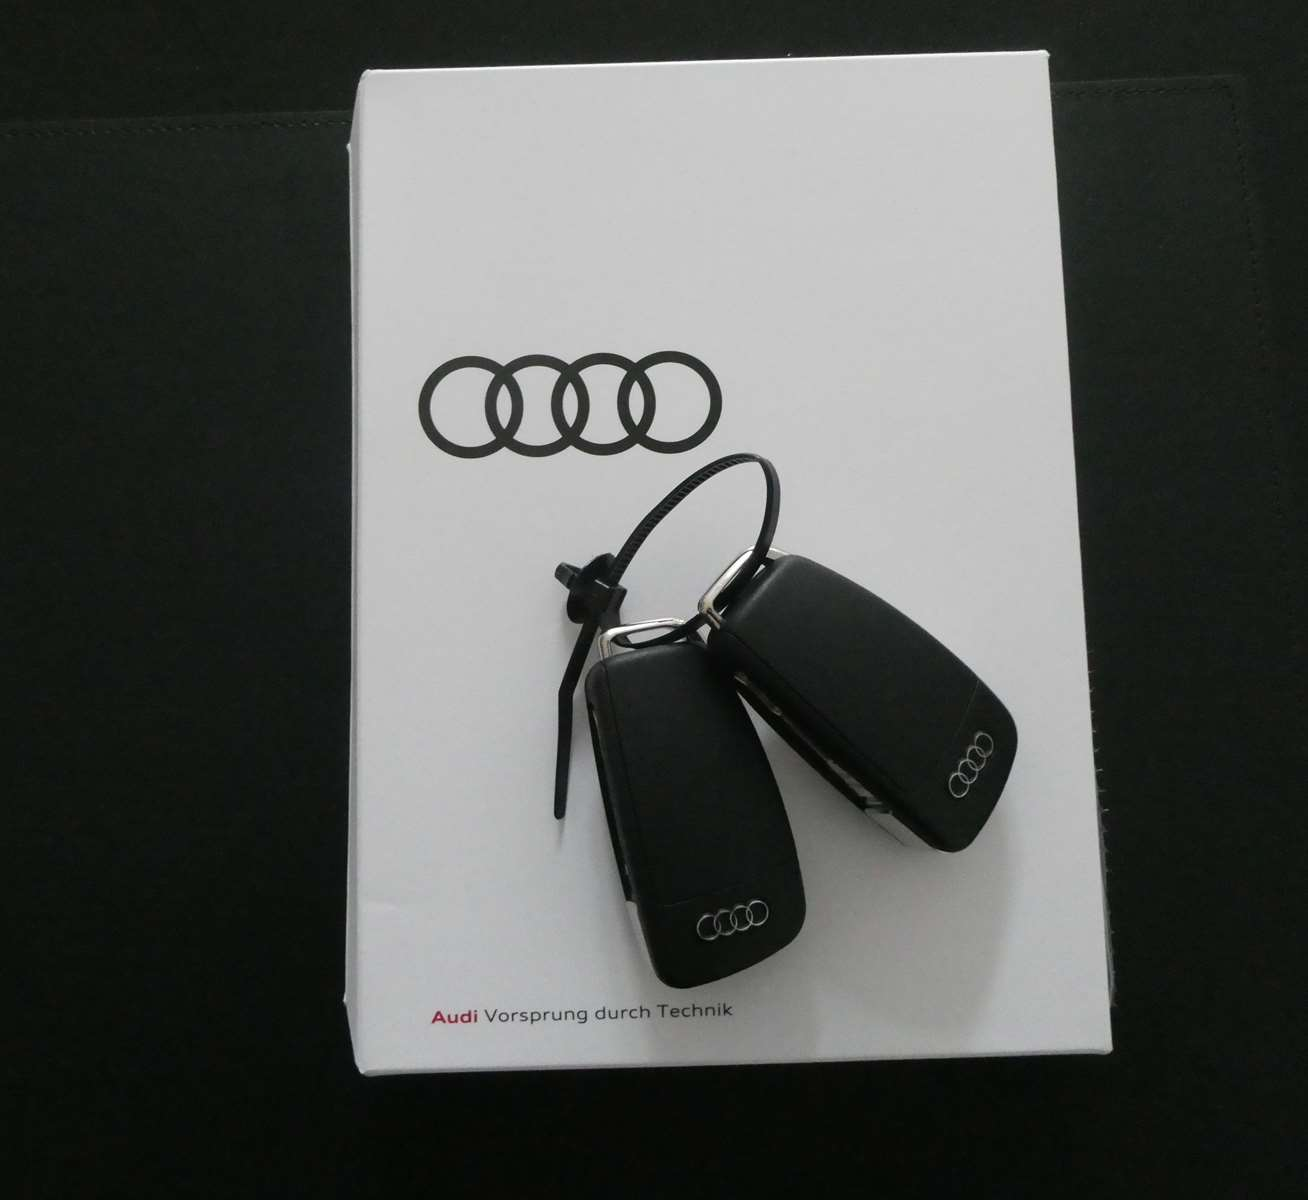 Audi A3 (2) cabriolet 35 TFSI 150 Design luxe S tronic 7 28